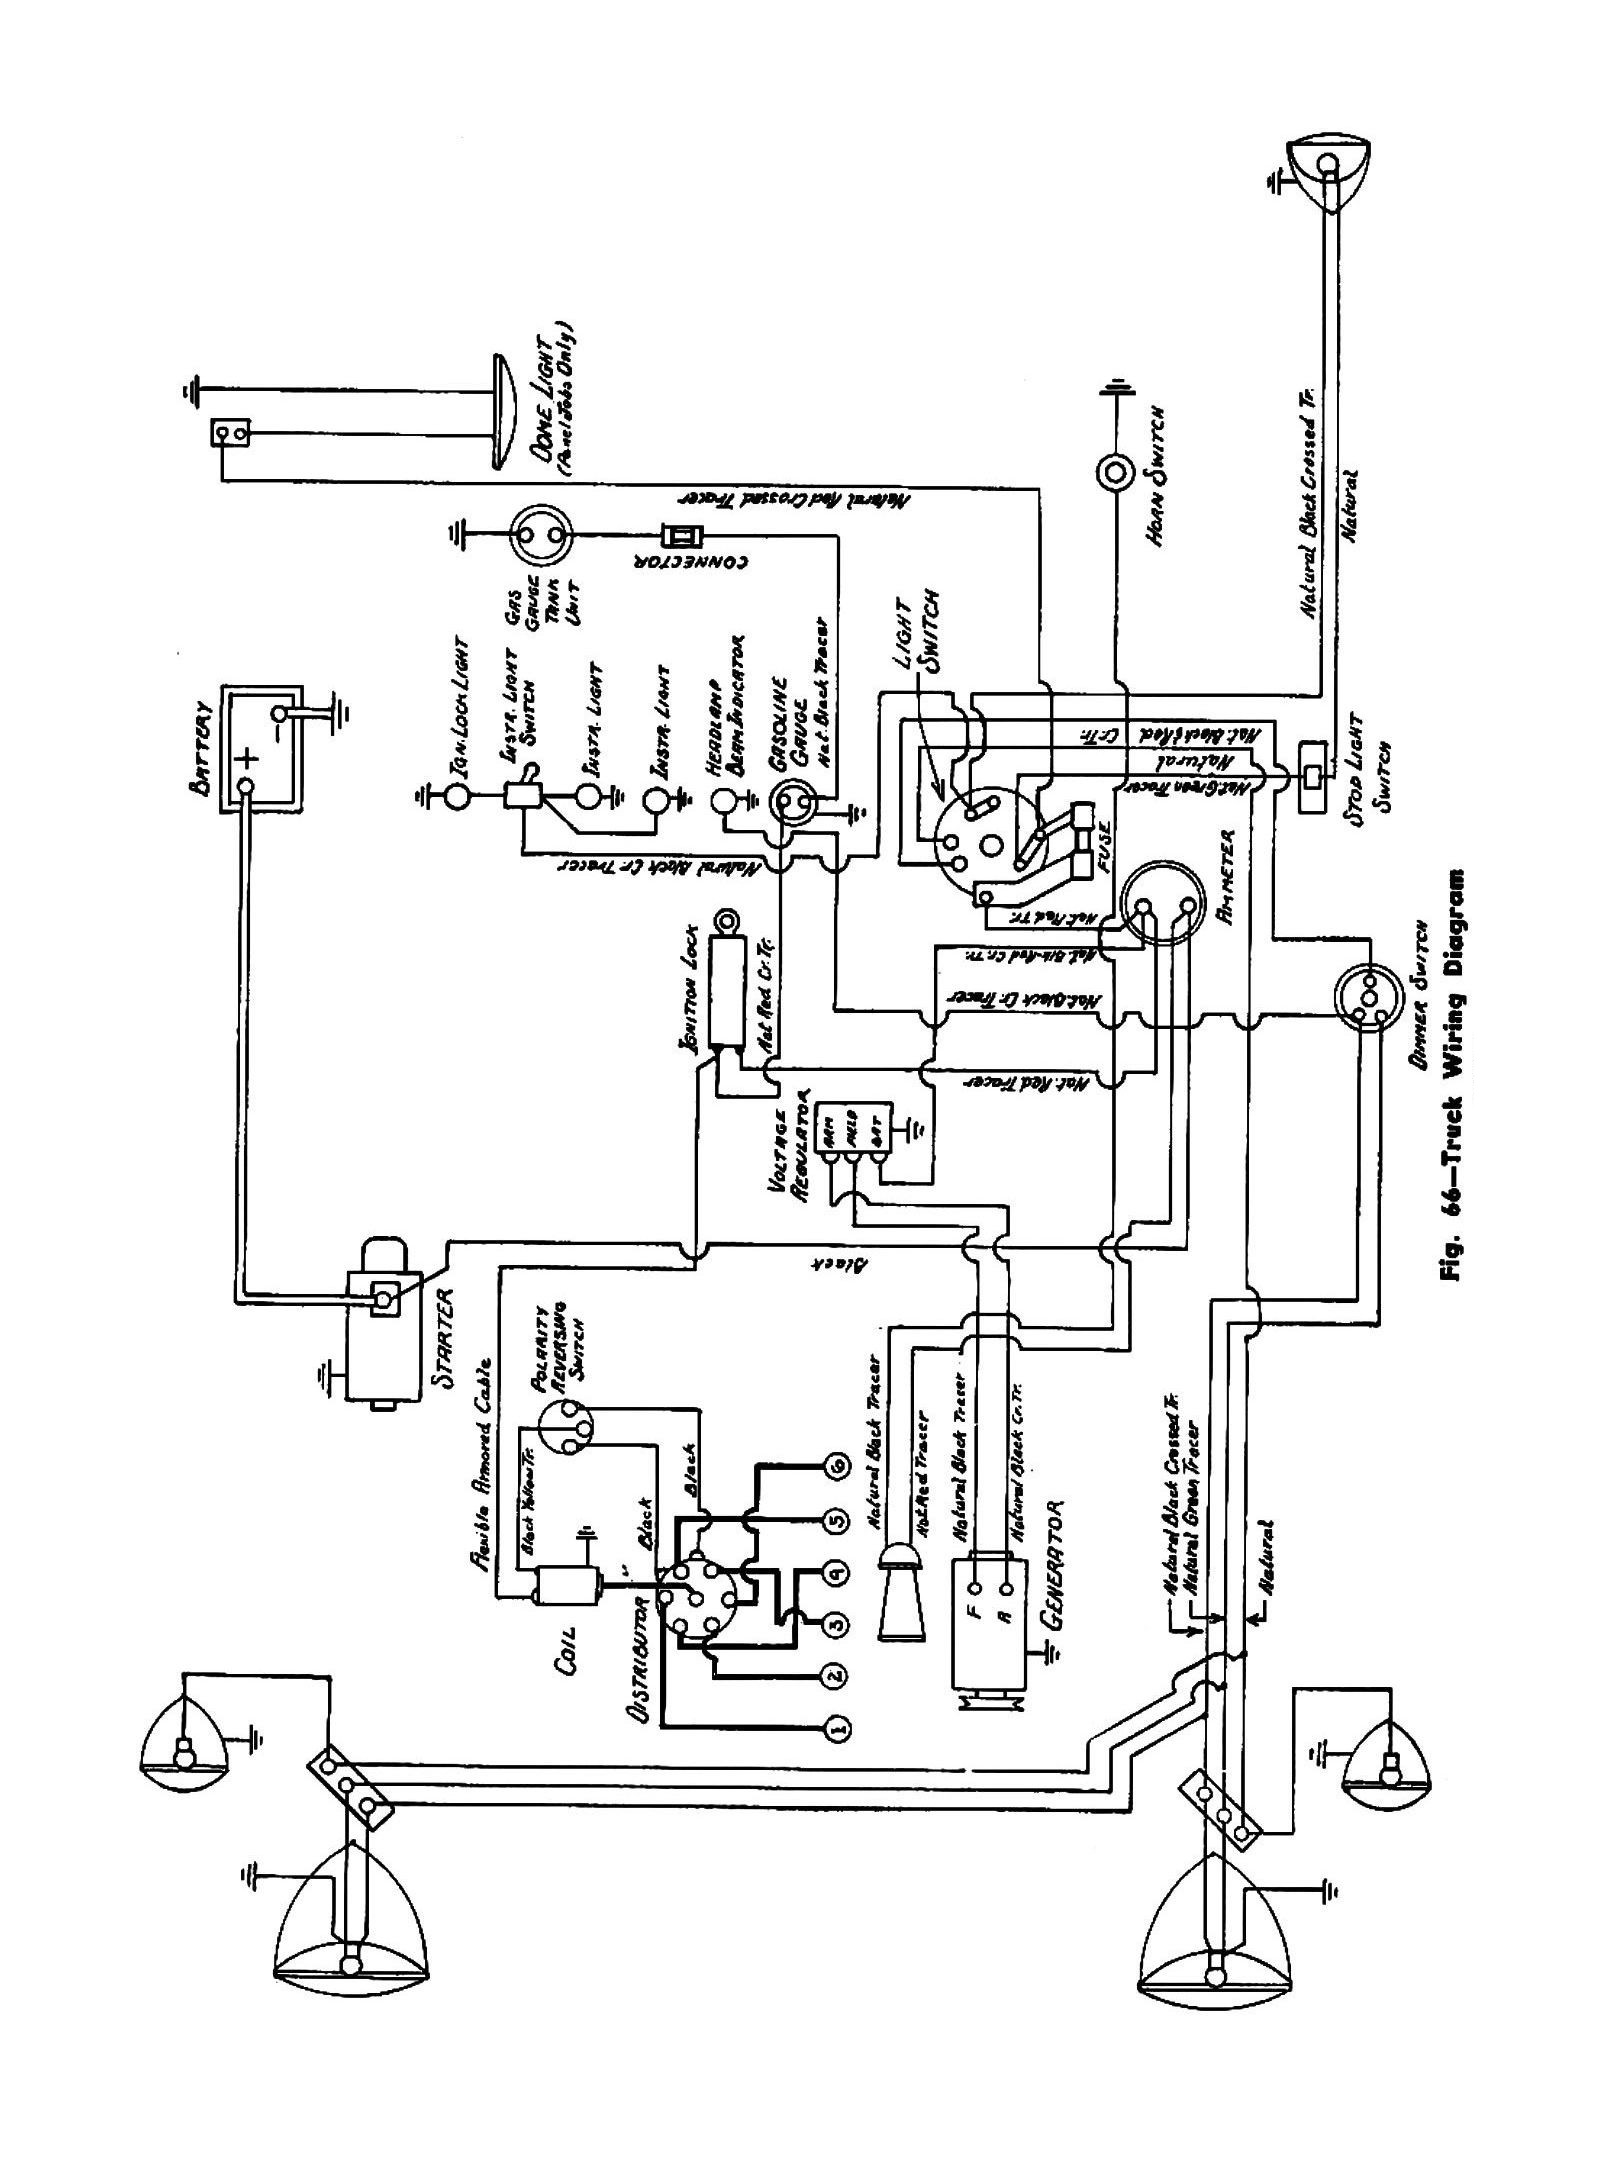 82 Chevy Truck Wiring Harness Trusted Diagrams 1996 Diagram Schematics Rh Diventare Co 1982 Transmission